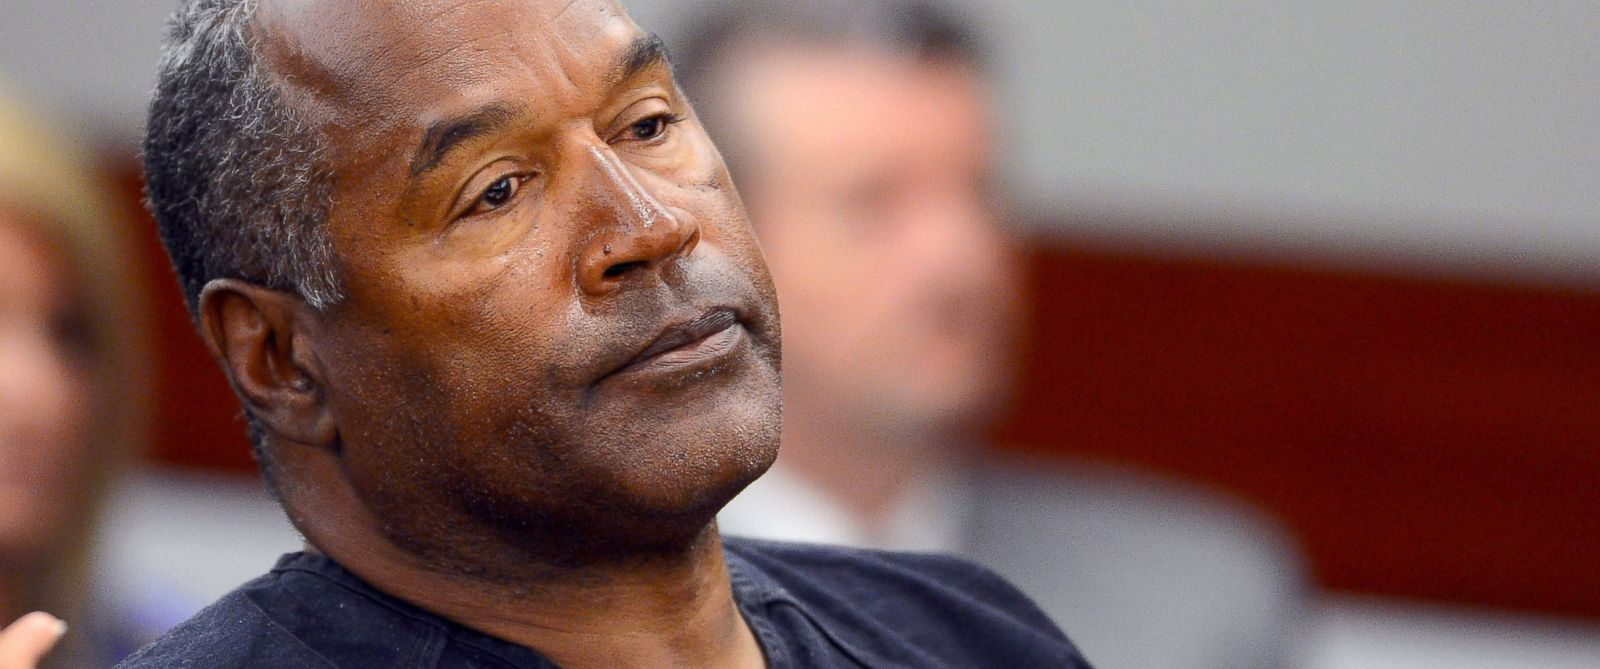 PHOTO: O.J. Simpson watches his former defense attorney Yale Galanter testify during an evidentiary hearing in Clark County District Court, May 17, 2013, in Las Vegas.